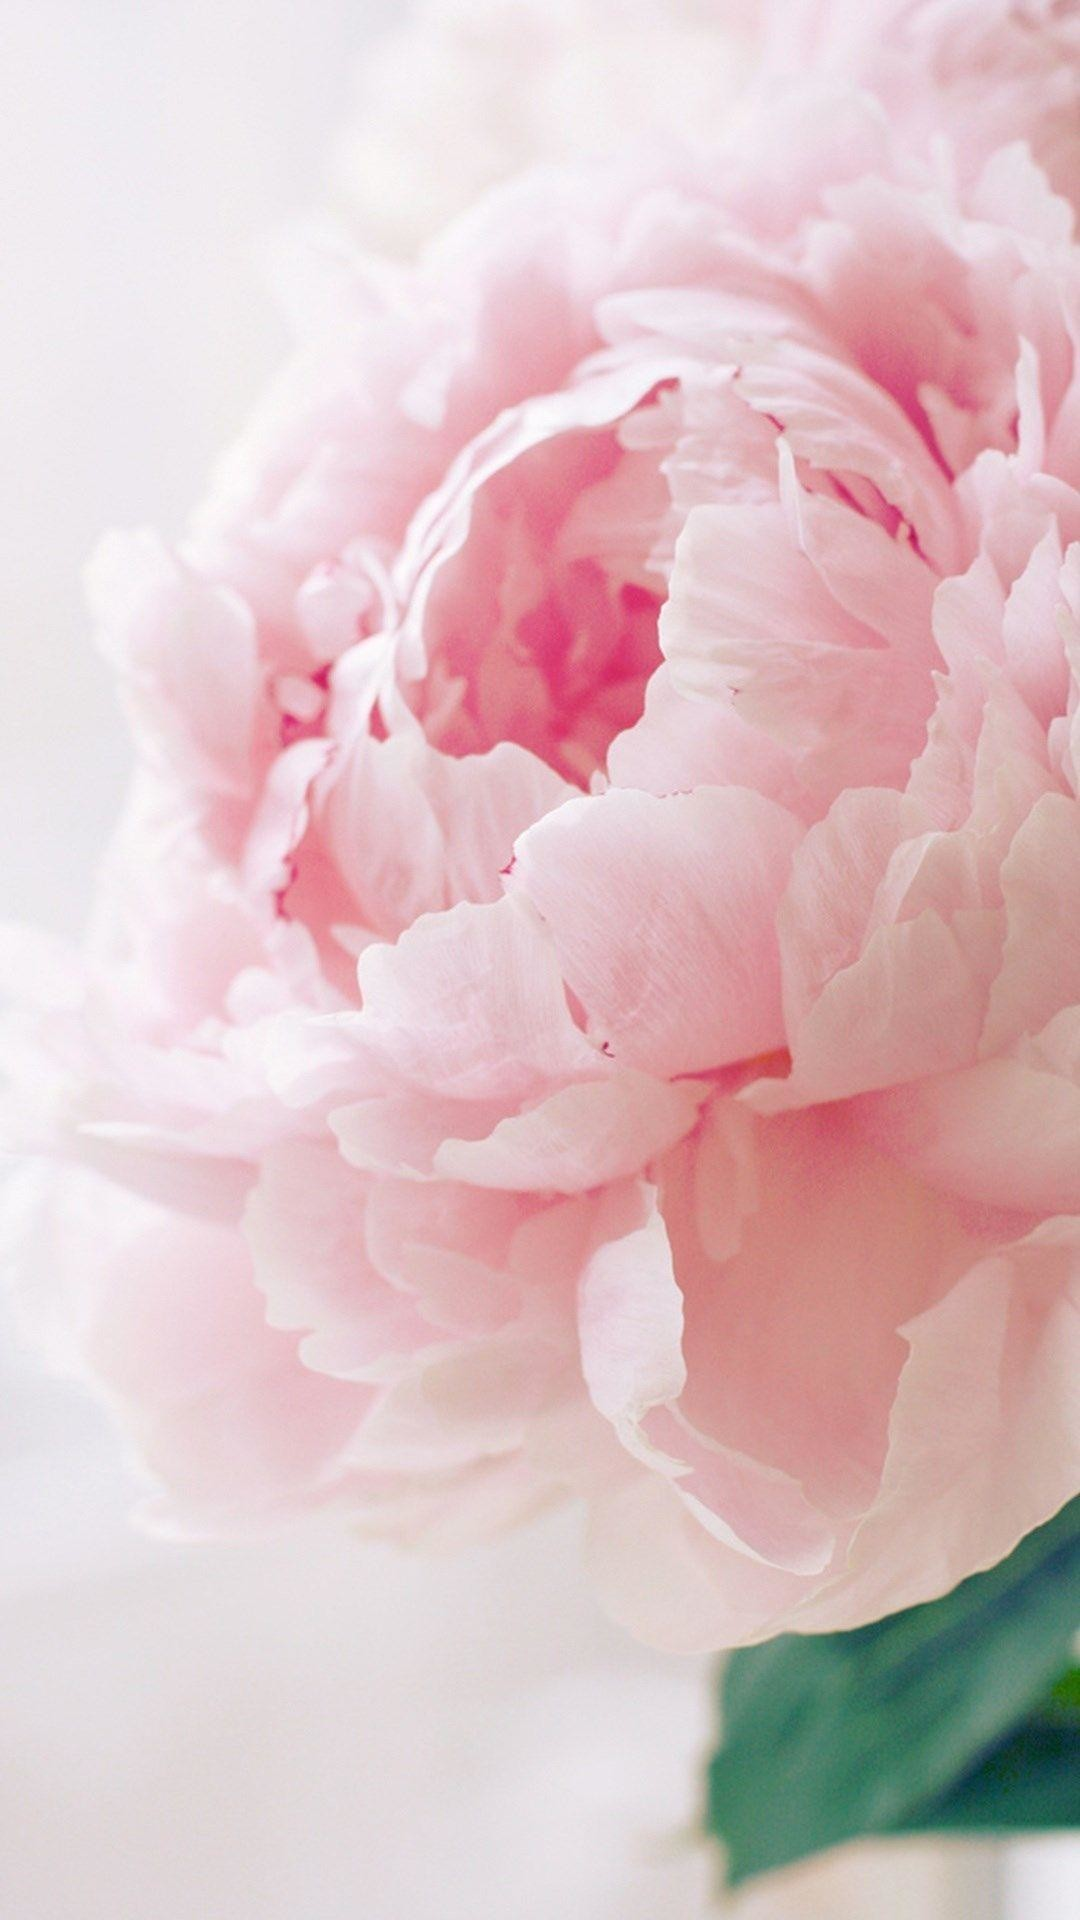 1080x1920 Pink Peonies iPhone wallpaper | Backgrounds & Quotes | Pinterest .